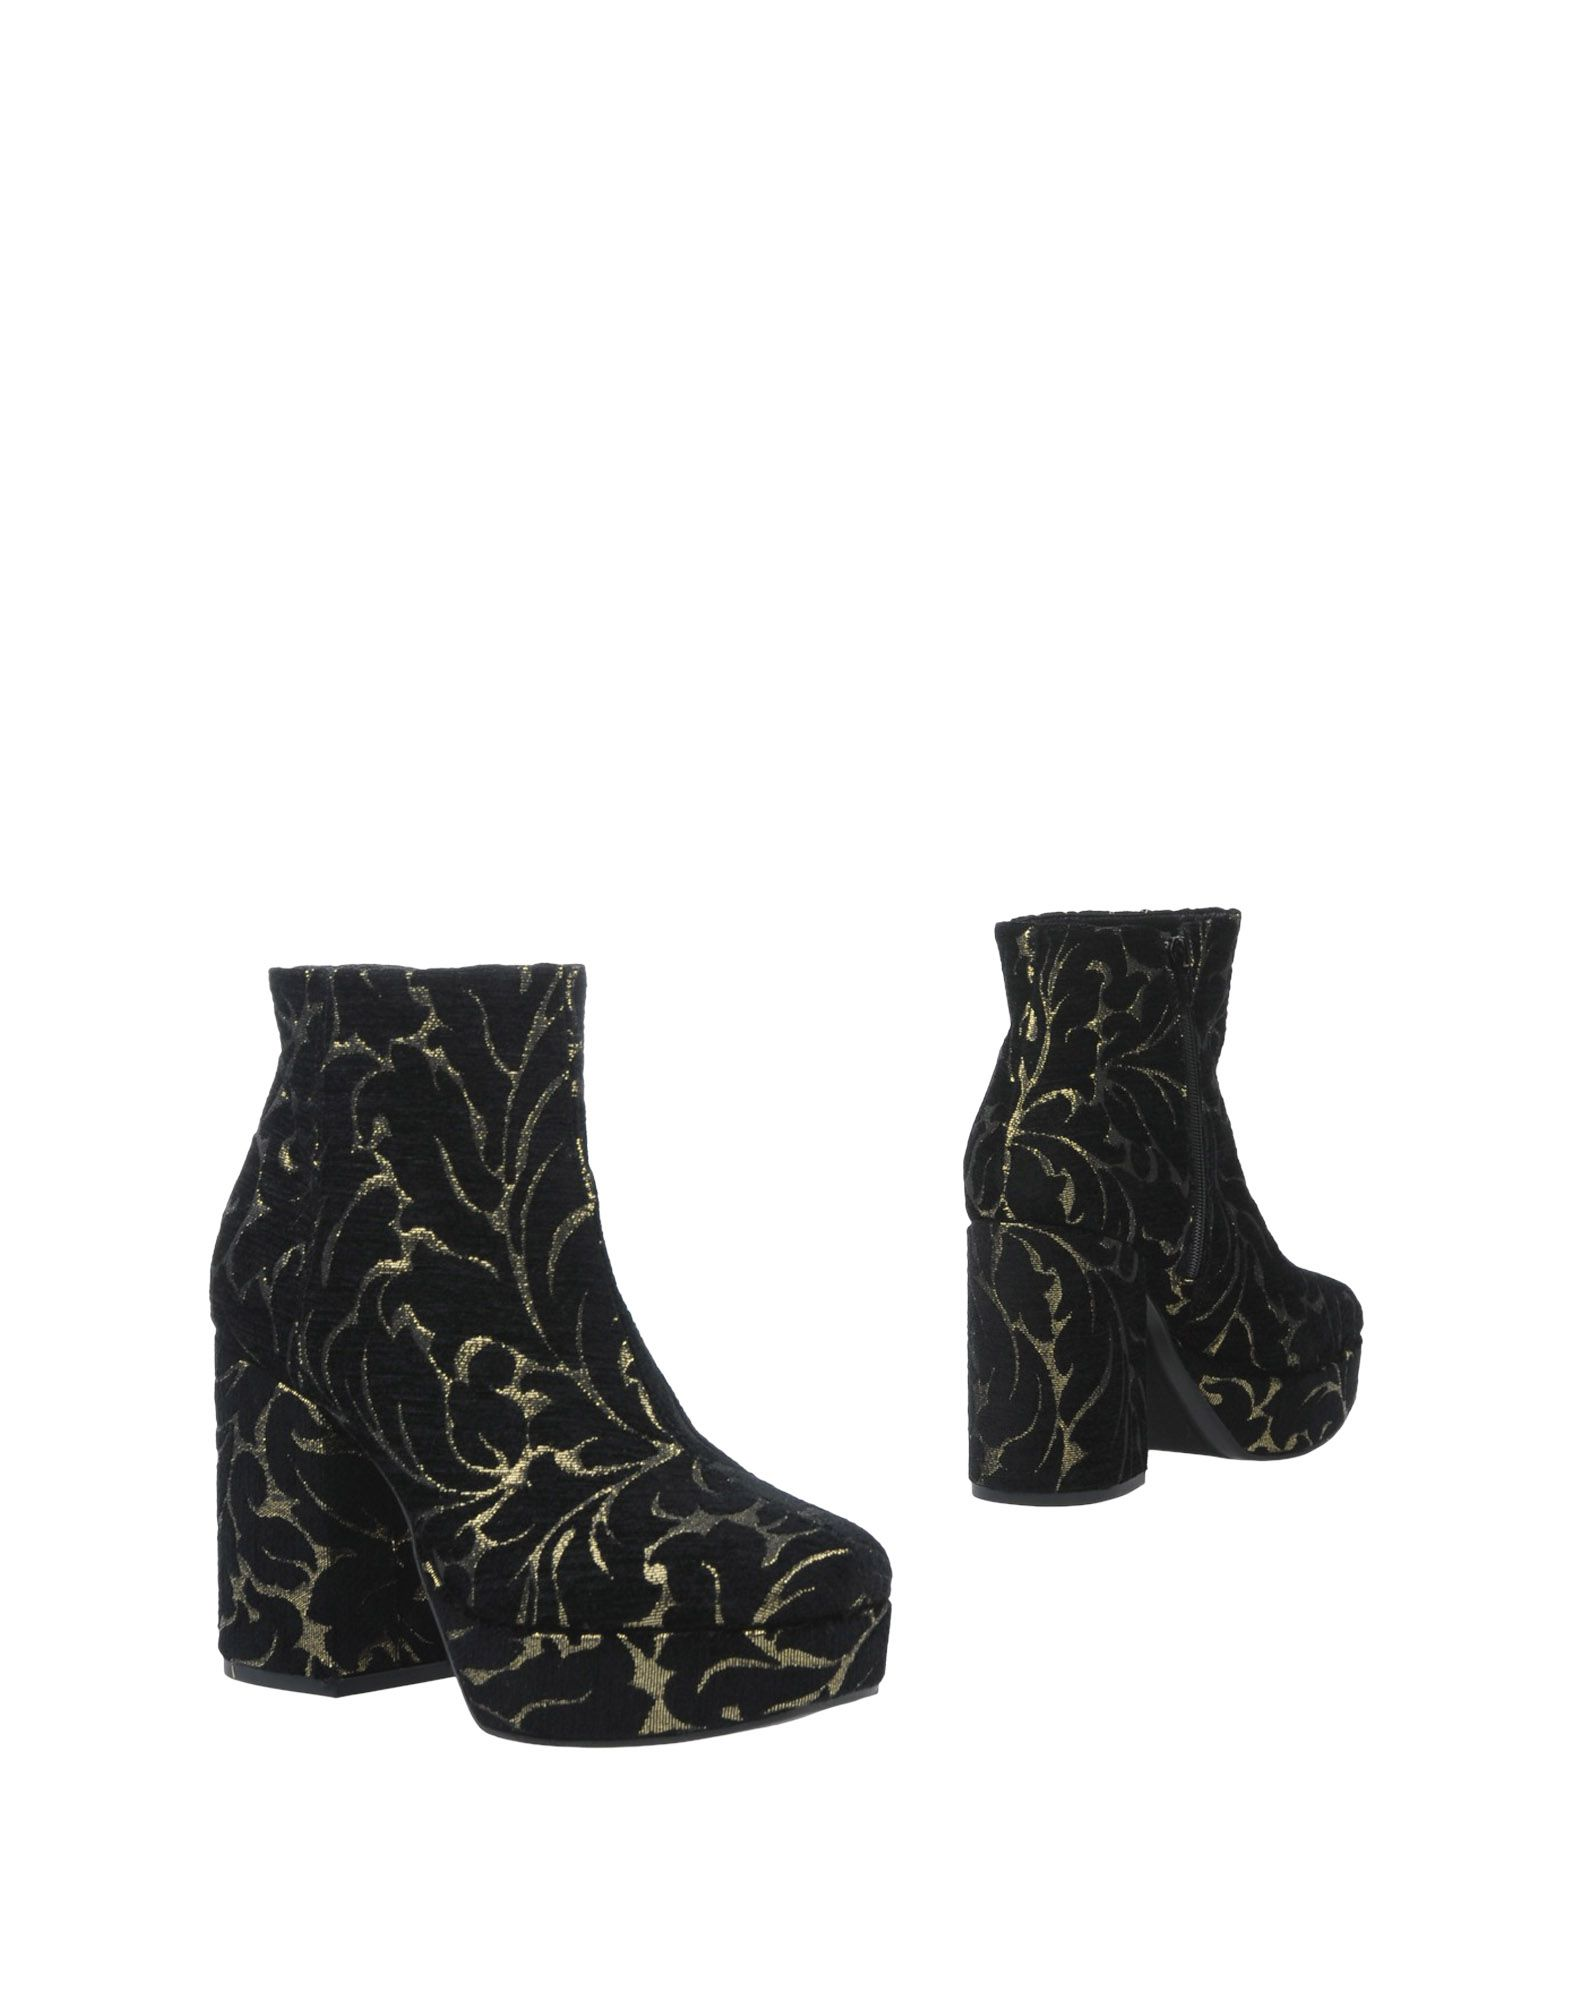 Vic Matiē Ankle Boot Ankle - Women Vic Matiē Ankle Boot Boots online on  Canada - 11325387EA bd5b08